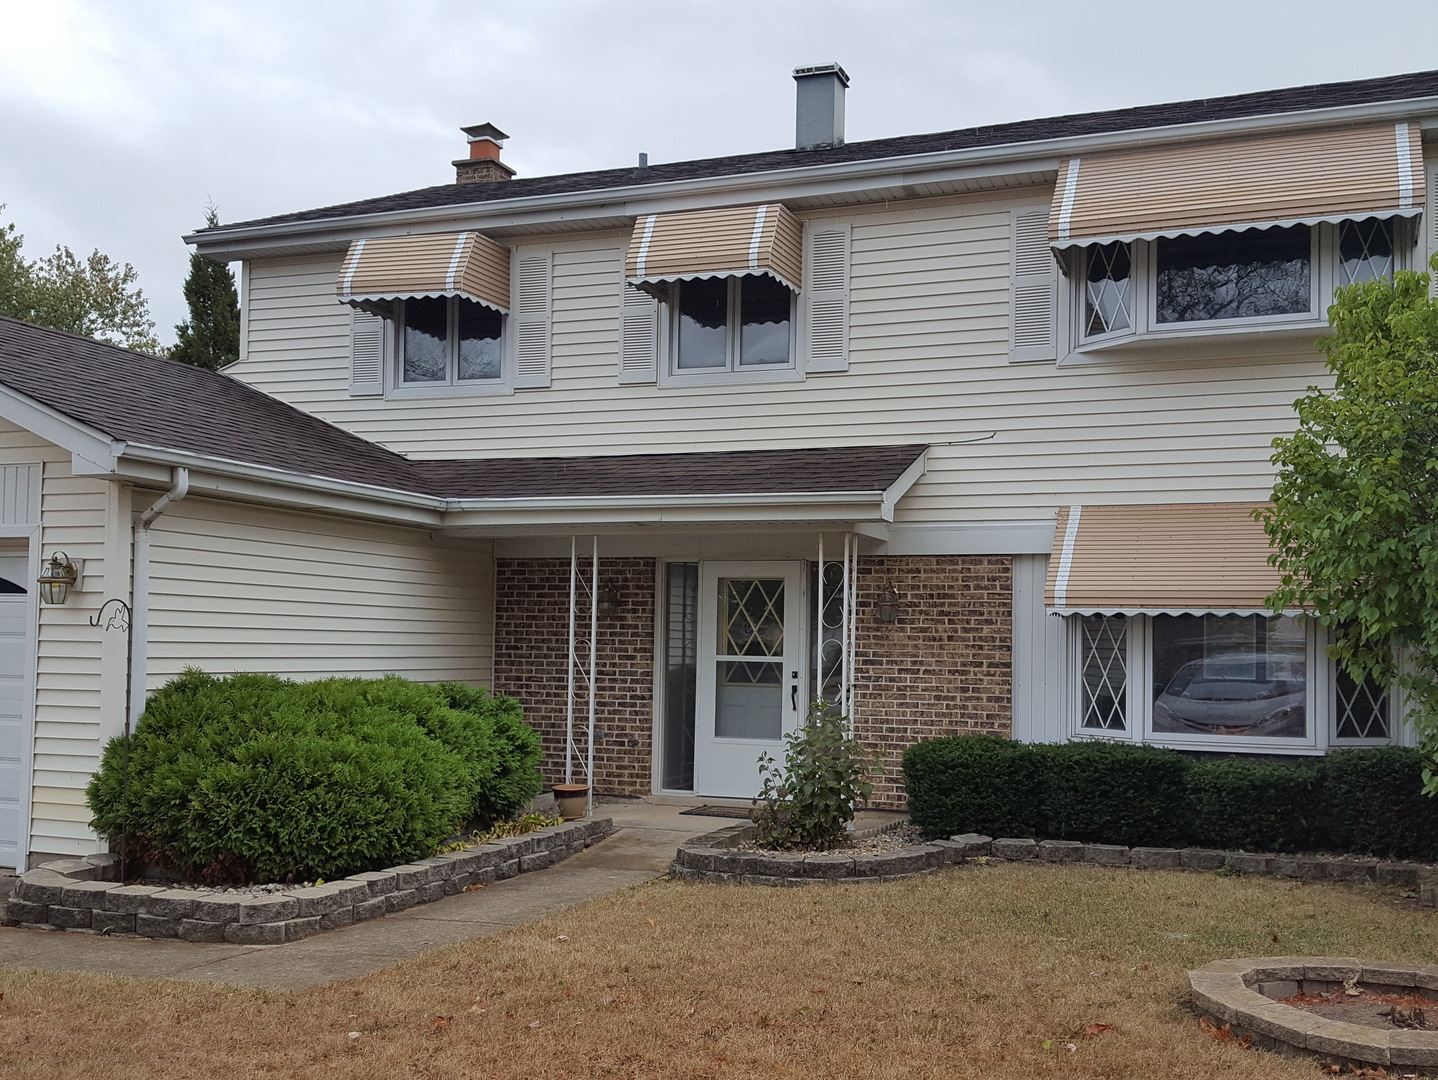 Property Photo For 1049 BEVERLY Court, LOMBARD, IL 60148, MLS # 09768461